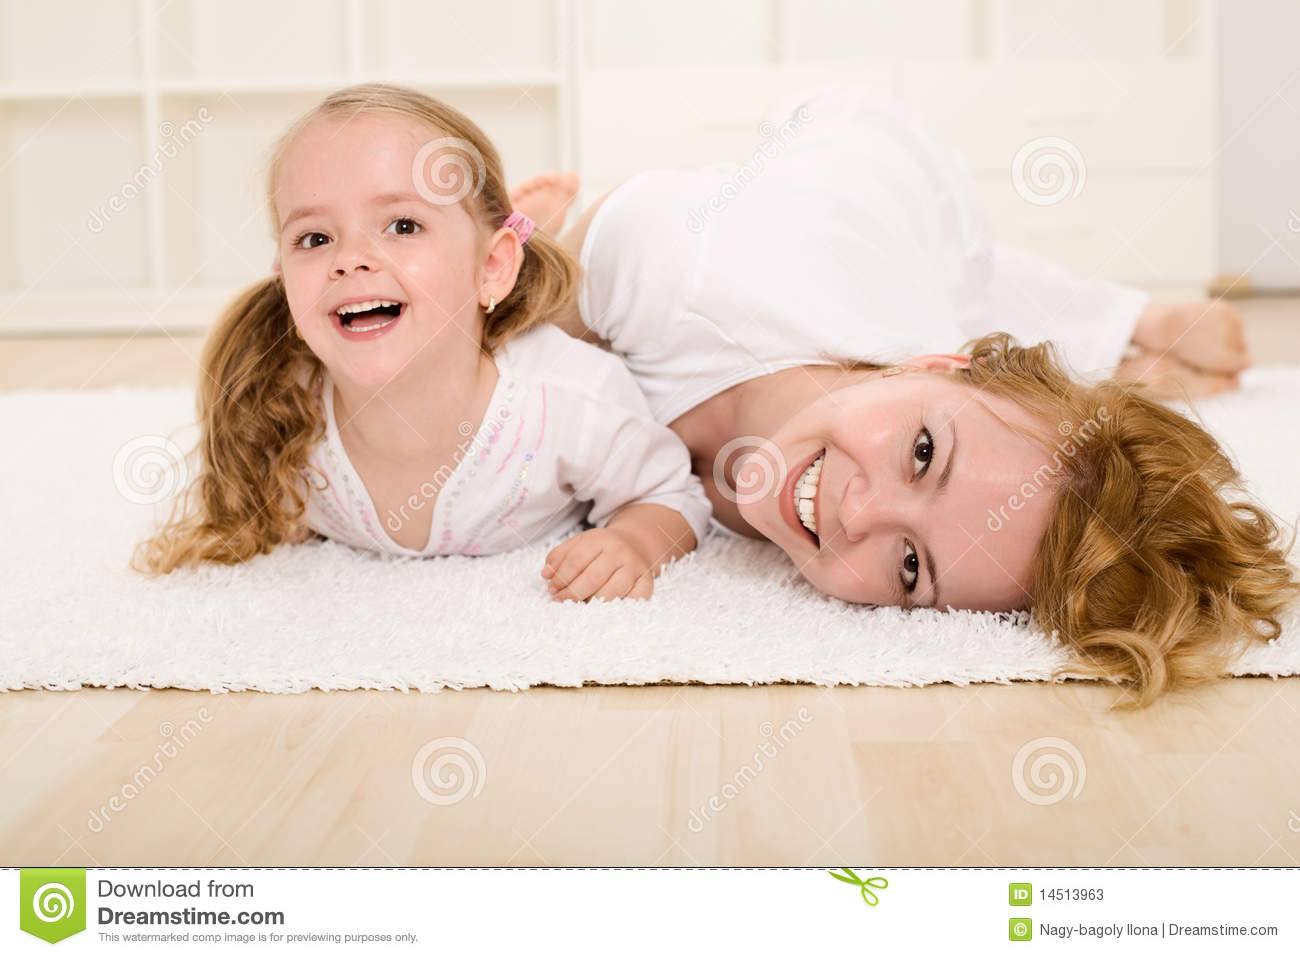 Woman and little girl playing and having fun